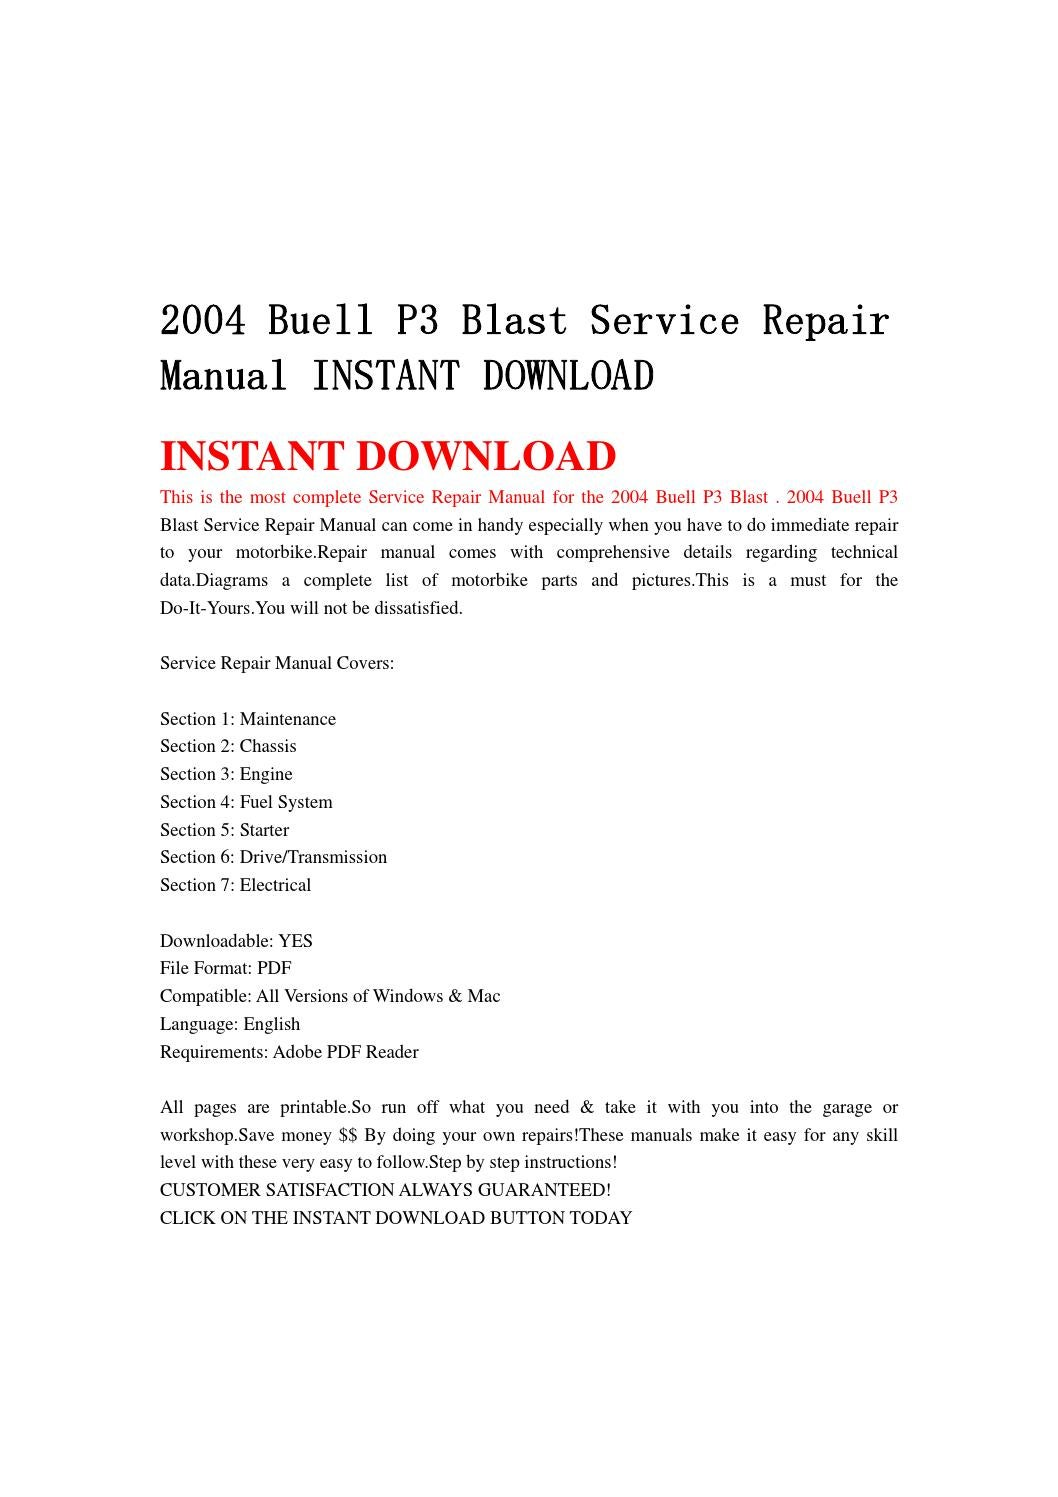 2004 buell p3 blast service repair manual instant download by 8hsjfnshen issuu